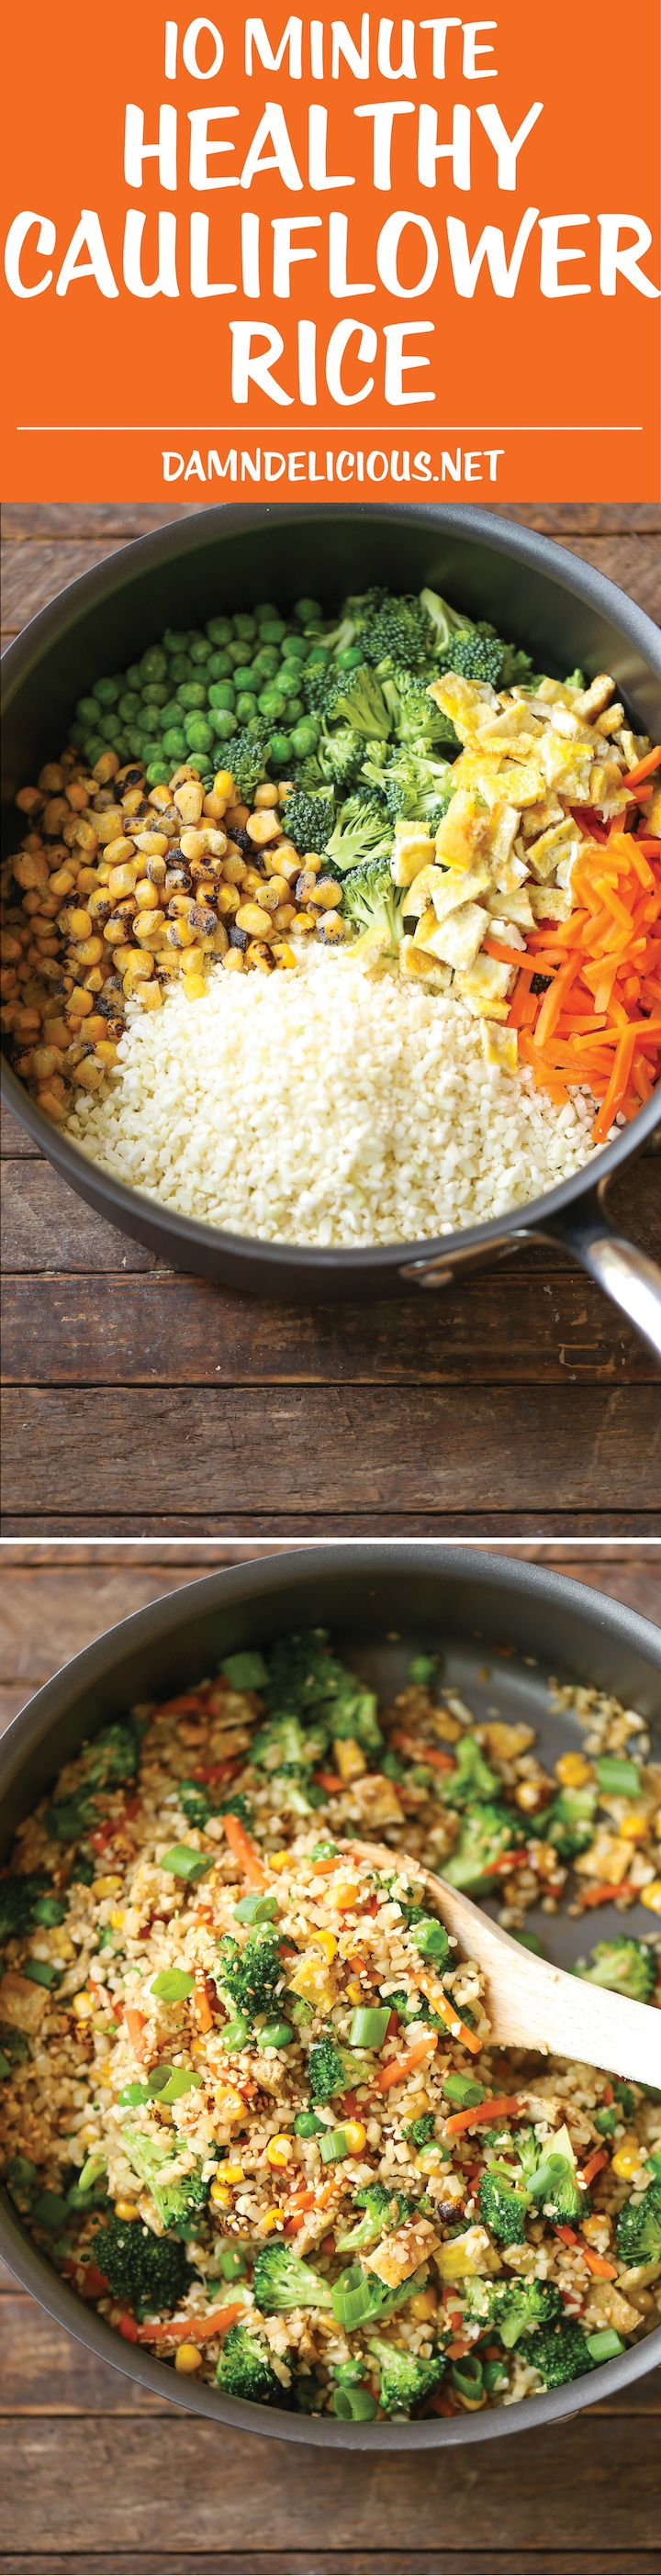 10 Minute Healthy Cauliflower Rice - An amazingly healthy twist on takeout fried rice but you can't even tell the difference. So EASY to make too!